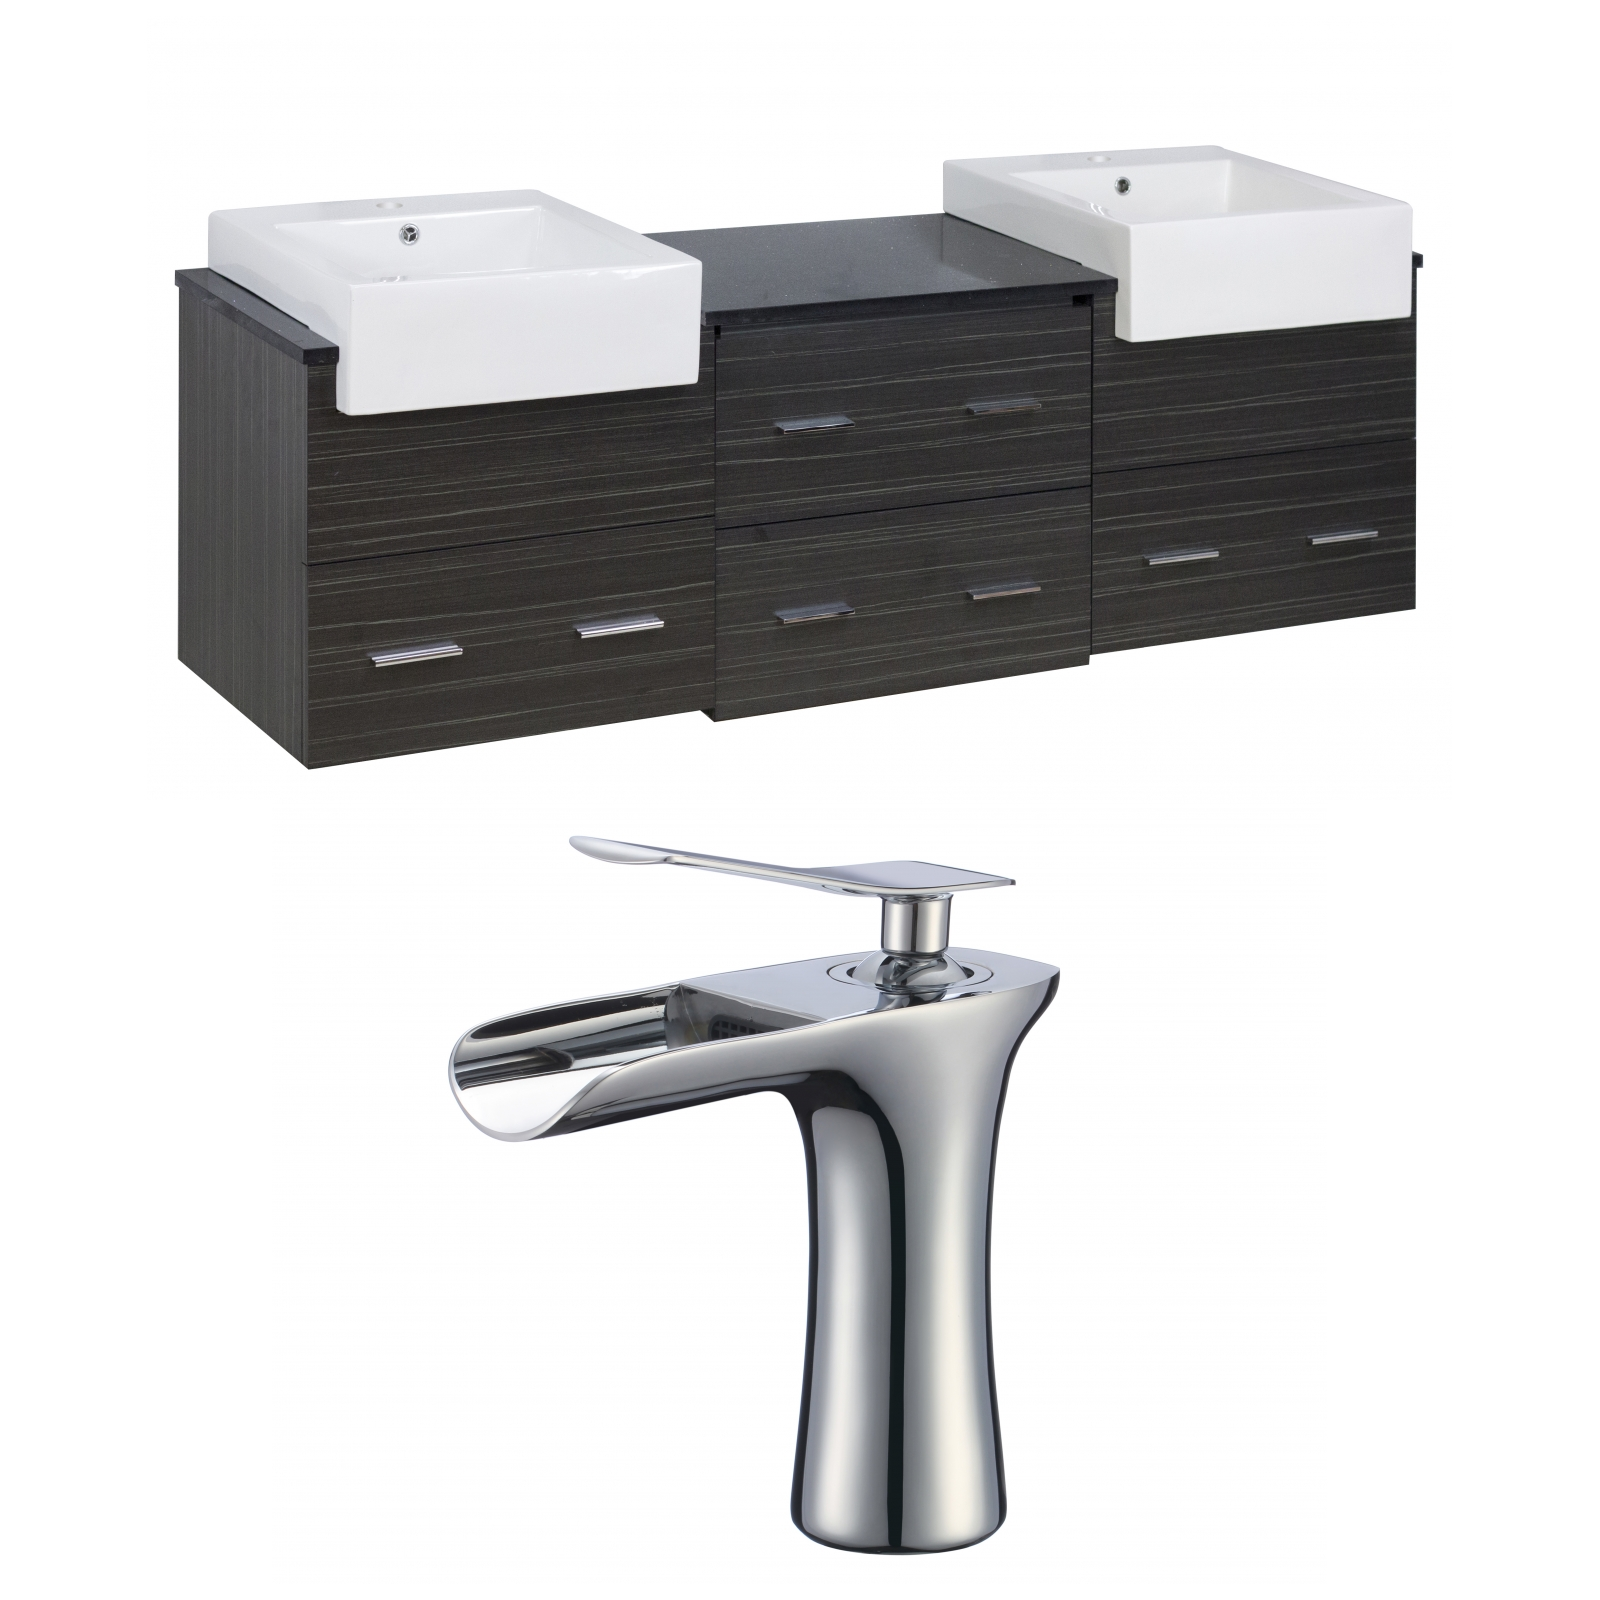 Faucet, Drain, Ceramic Top, Kitchen Sink, Laundry Sink, Magnifying ...